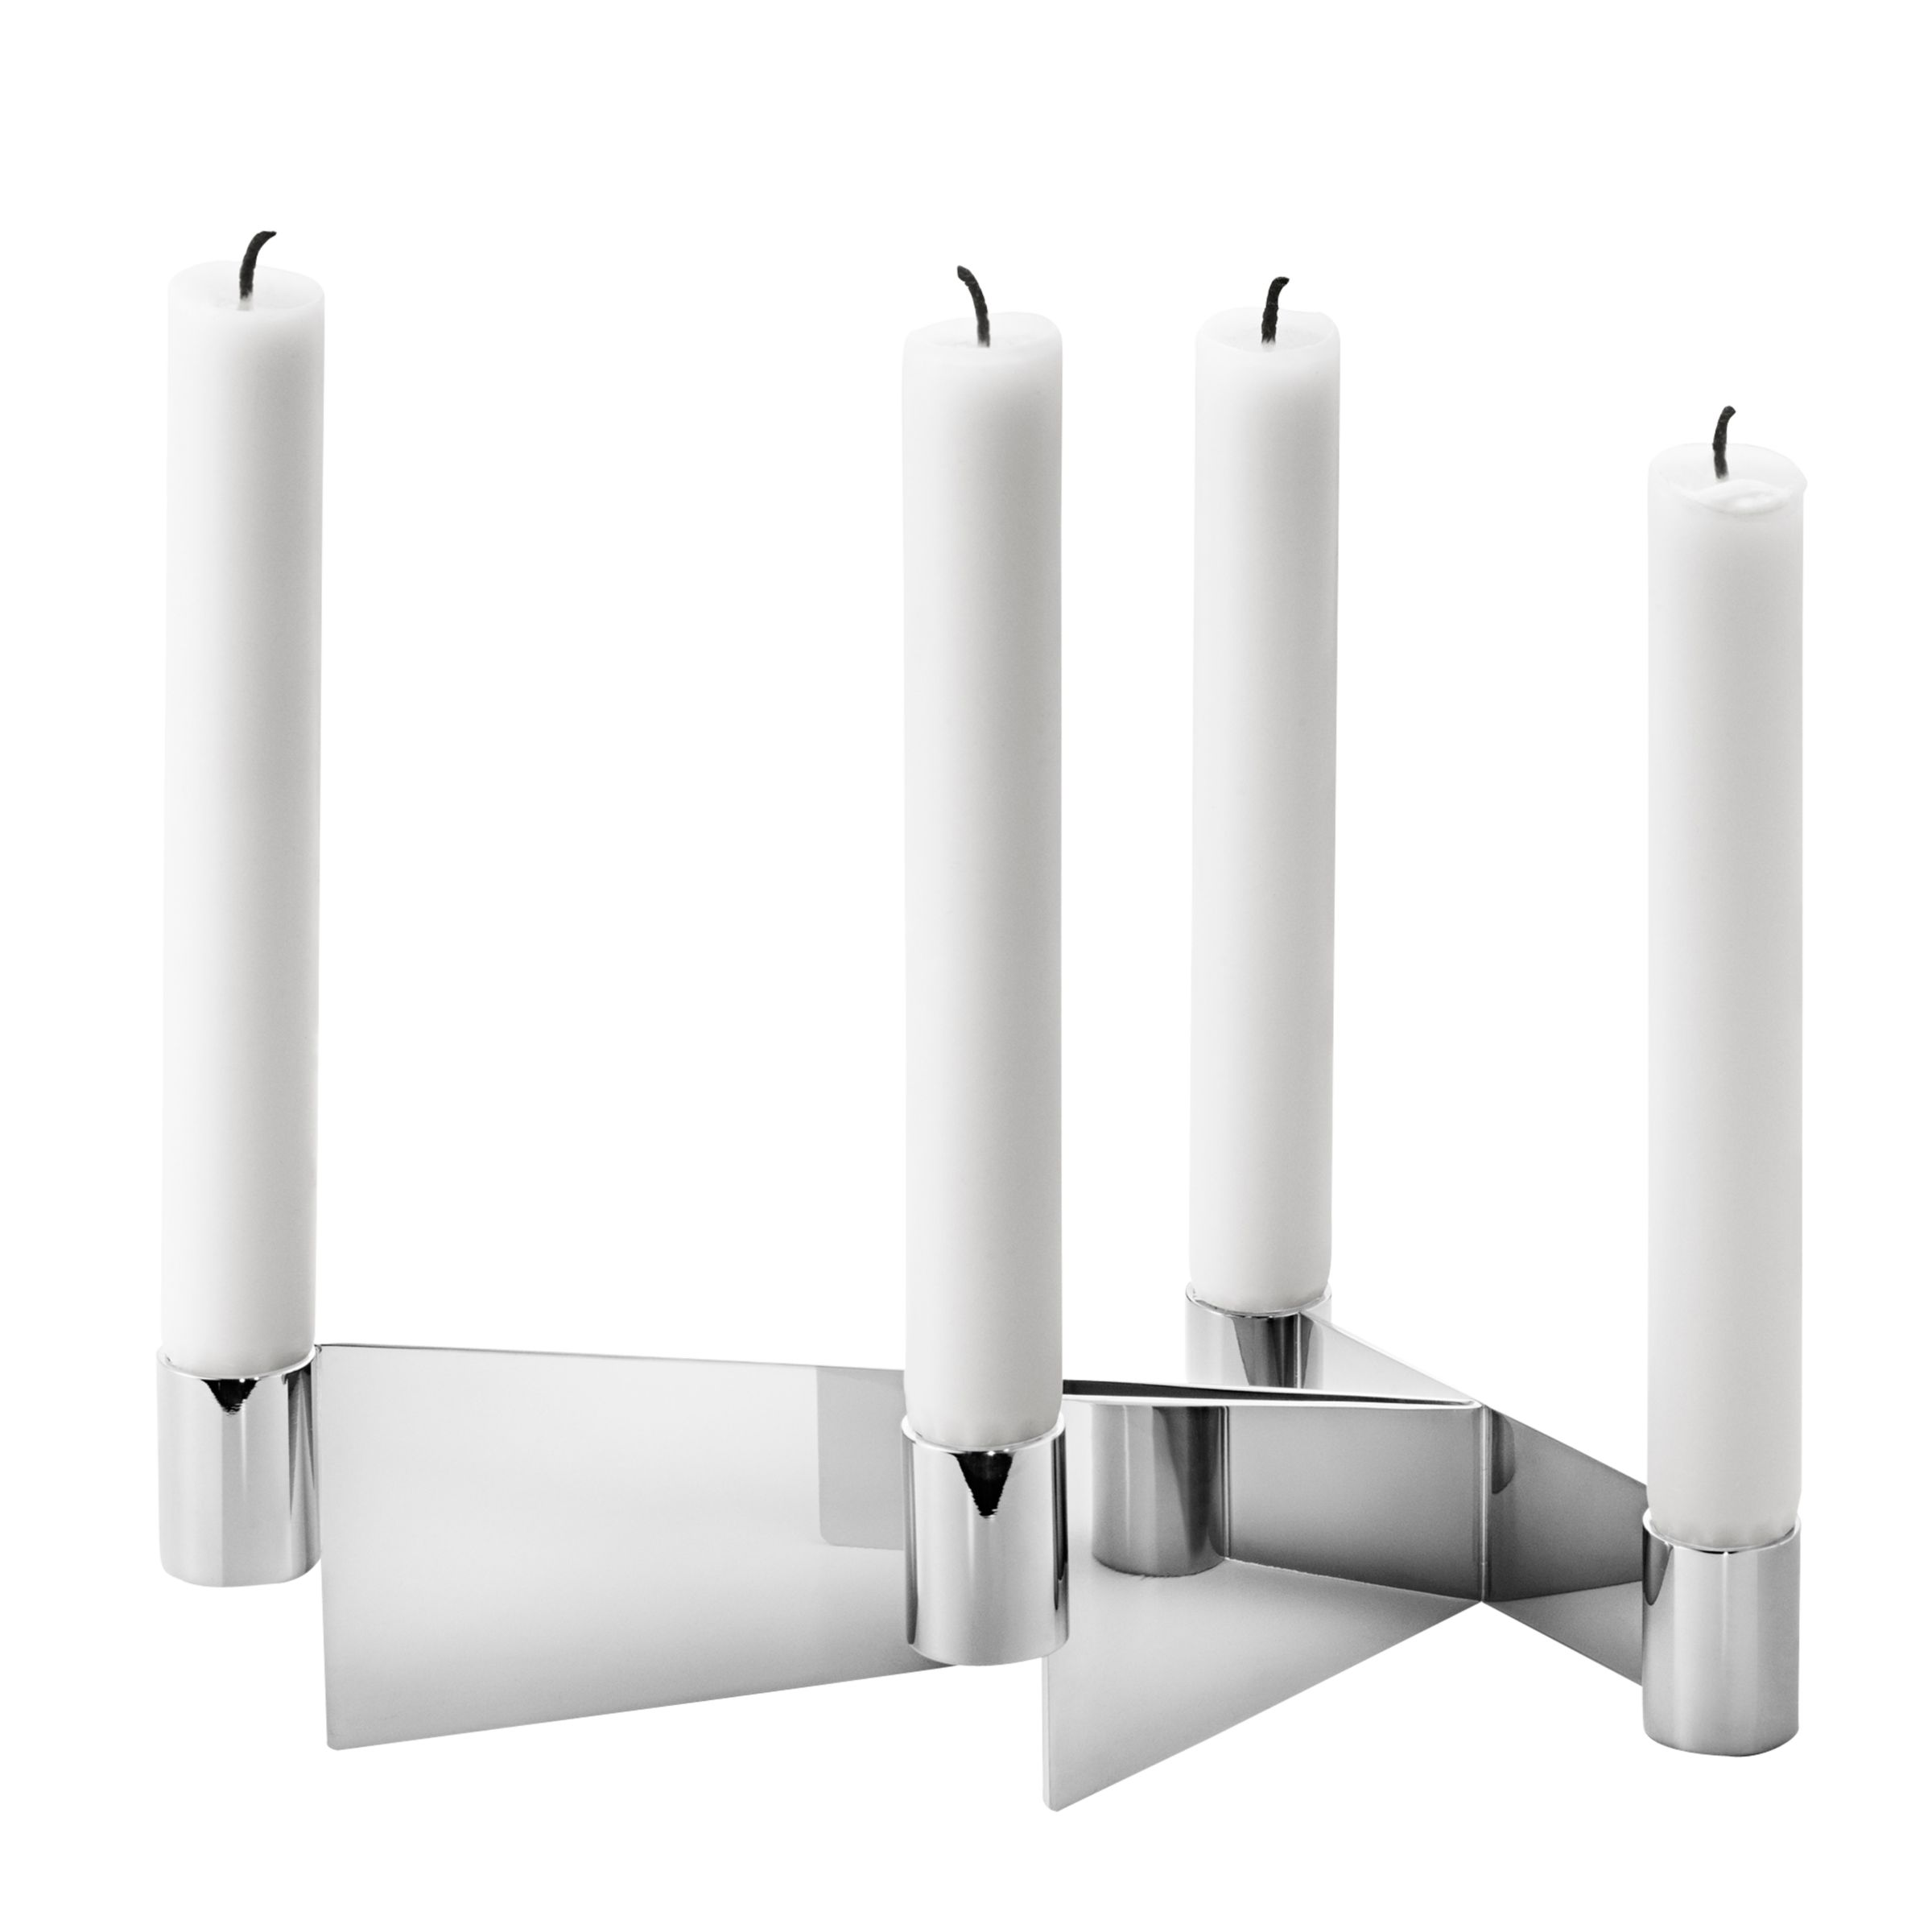 Georg Jensen Georg Jensen Urkiola Stainless Steel Candlestick Holder